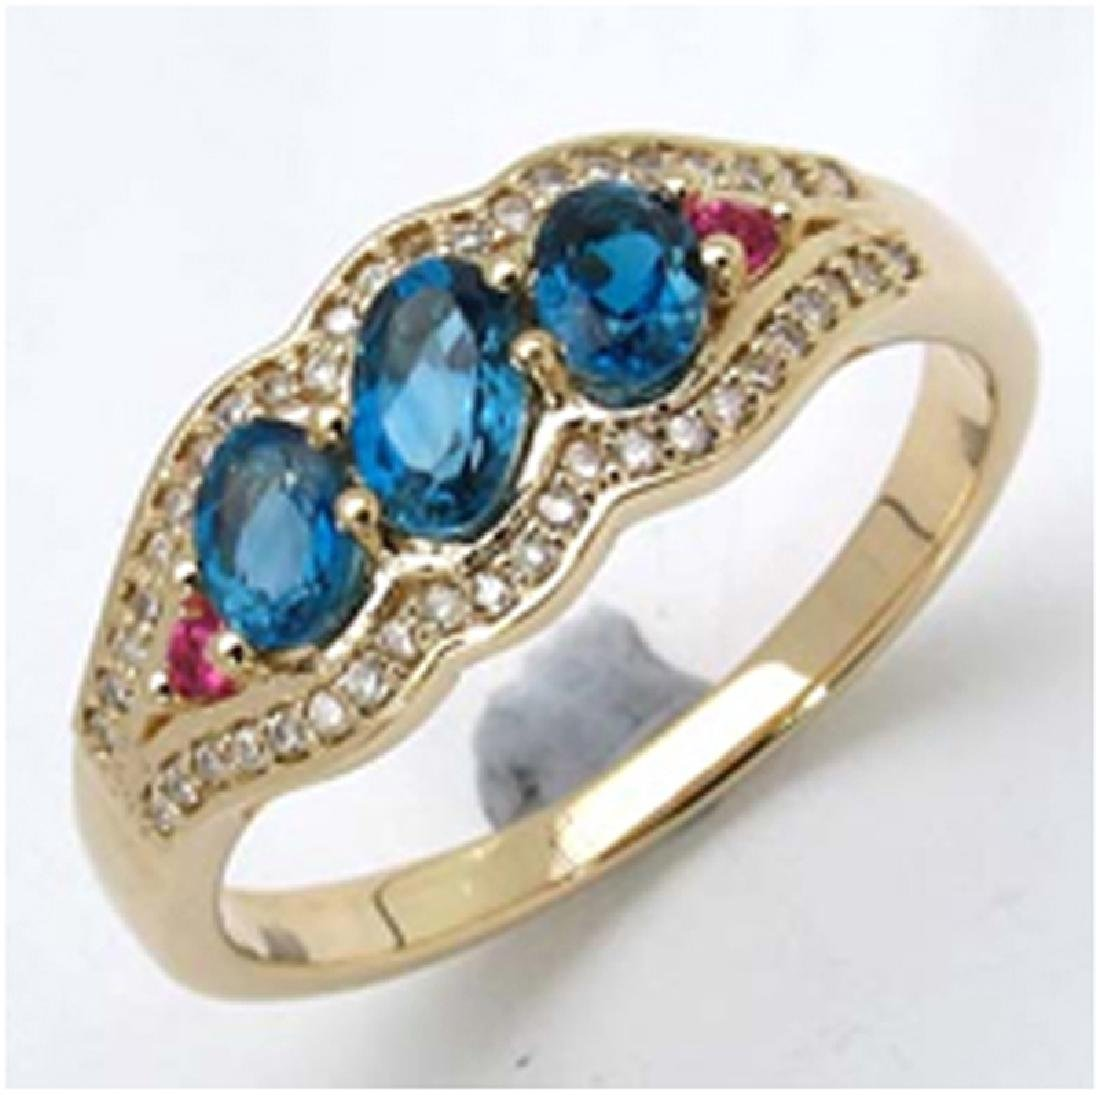 *Fine Jewelry 14K Gold, 3.21CT London Blue Topaz Oval +